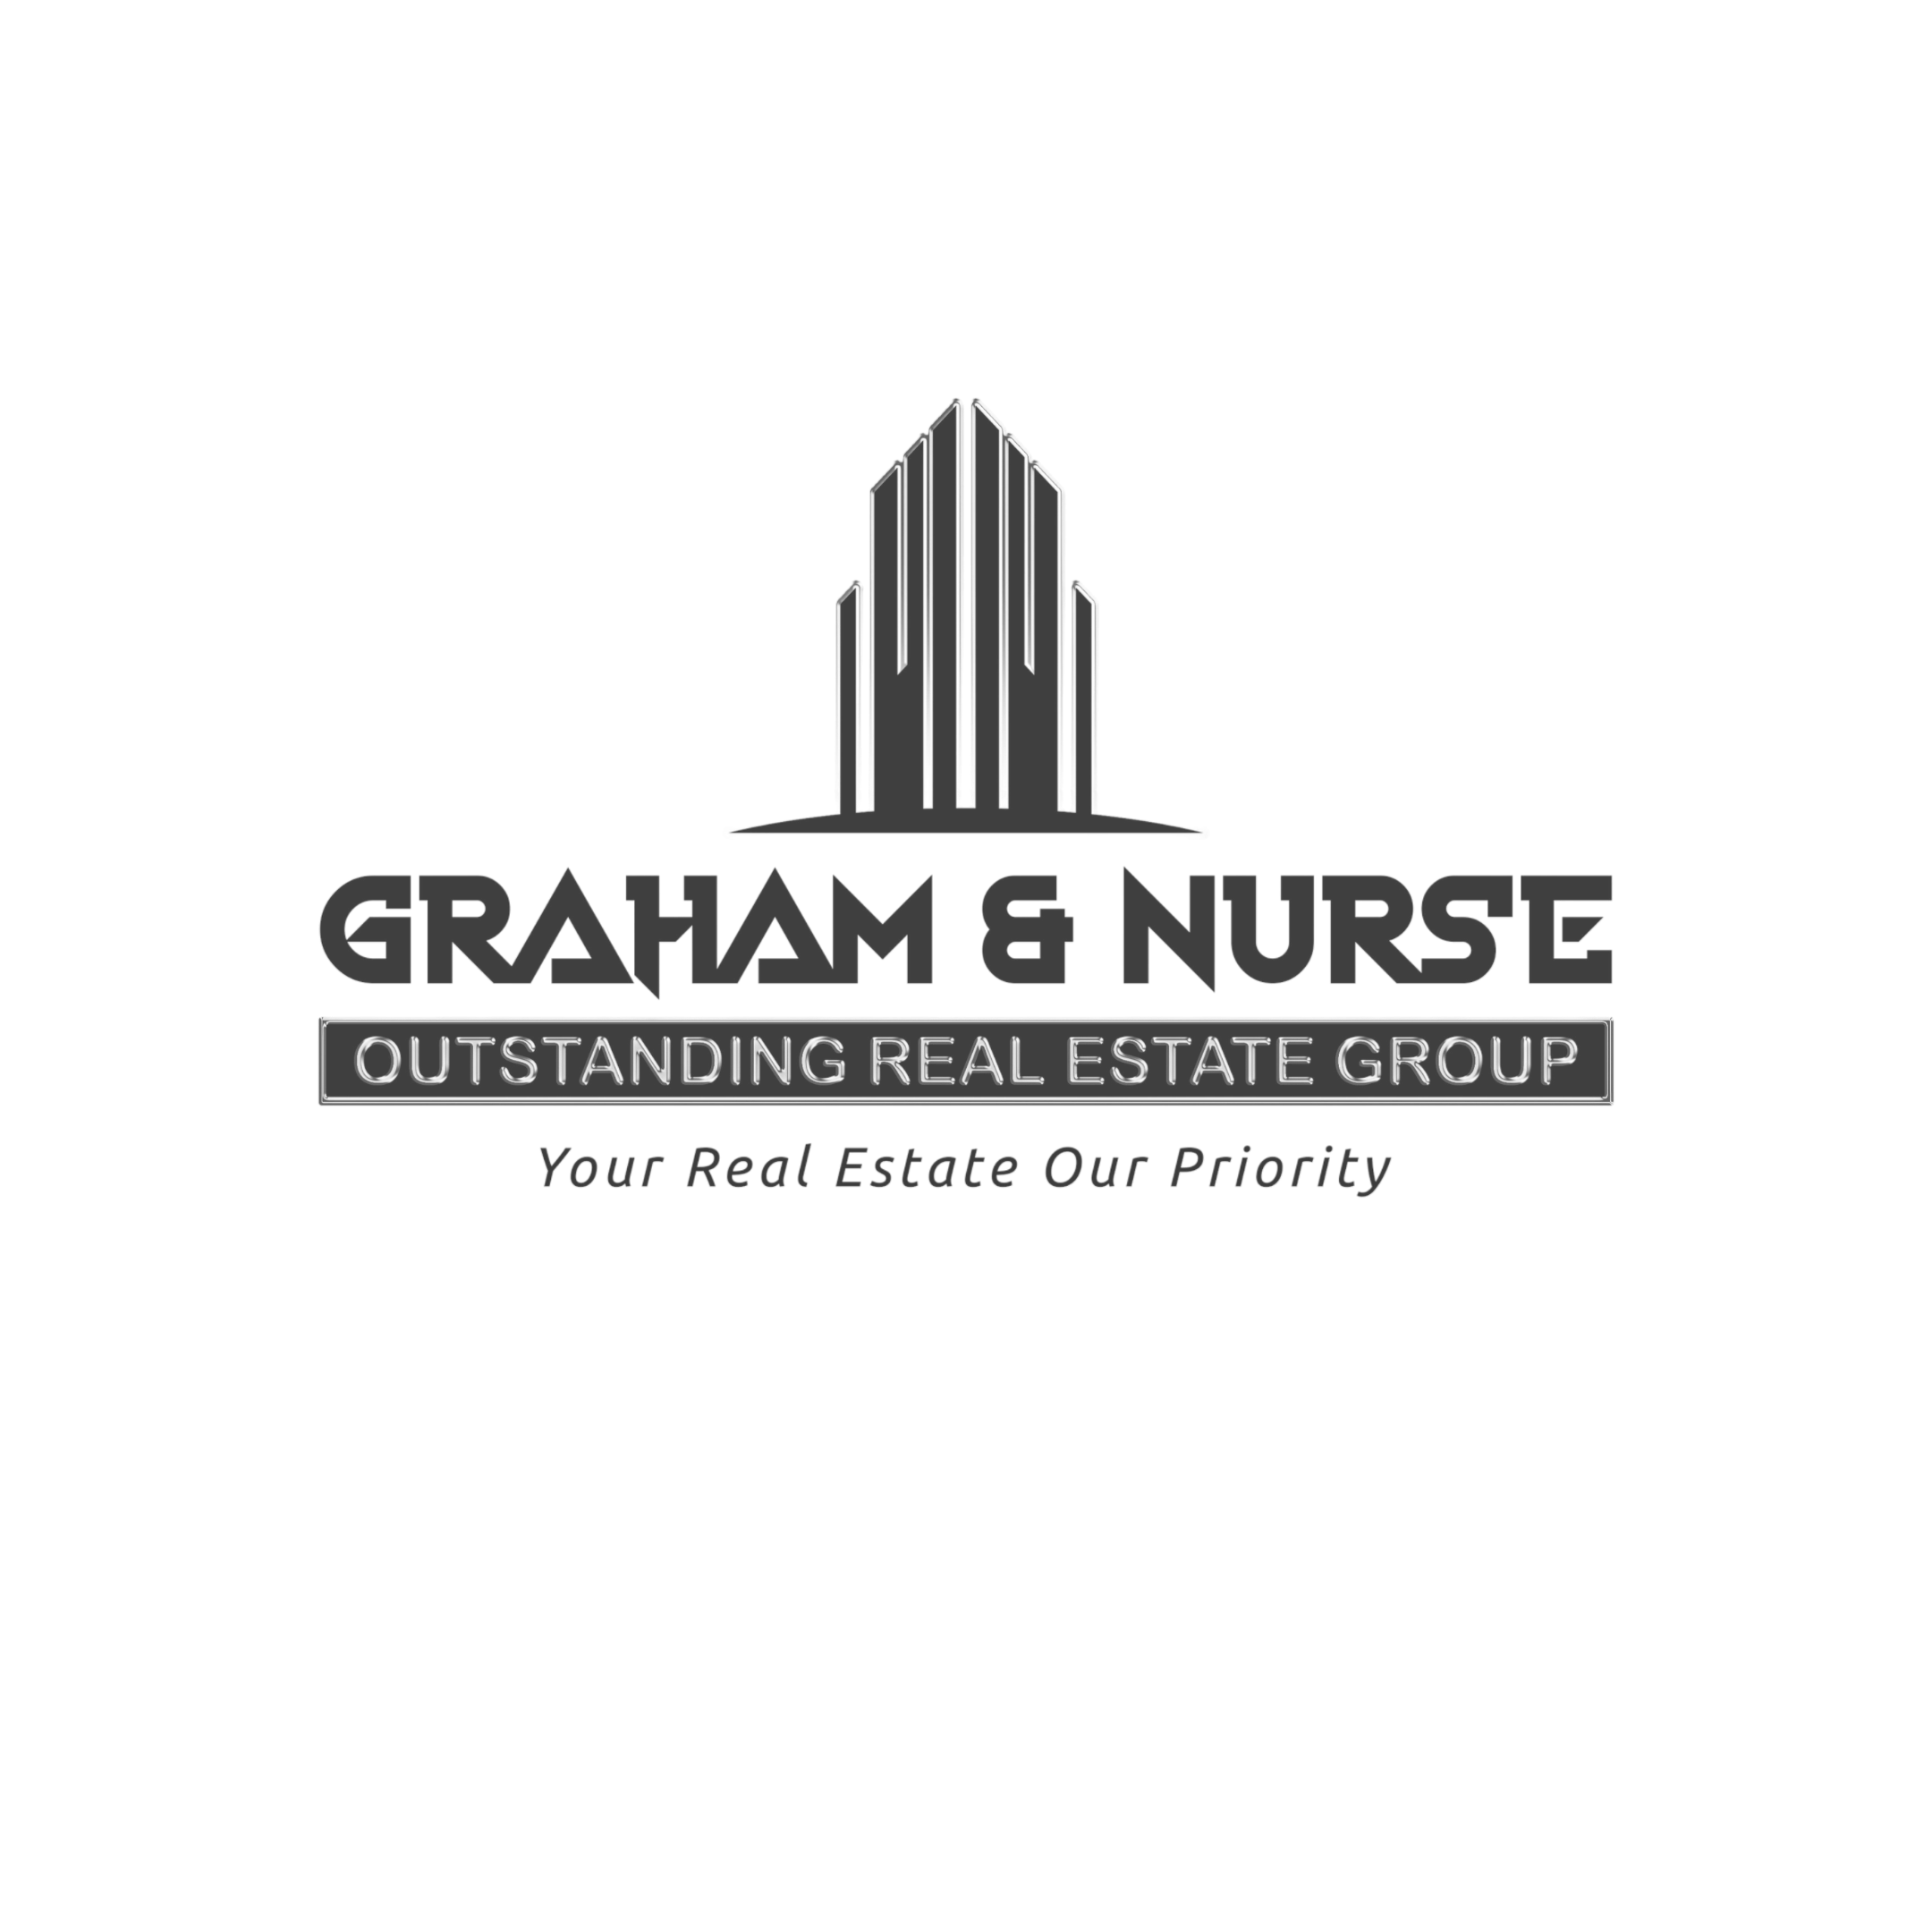 Outstanding Real Estate Group